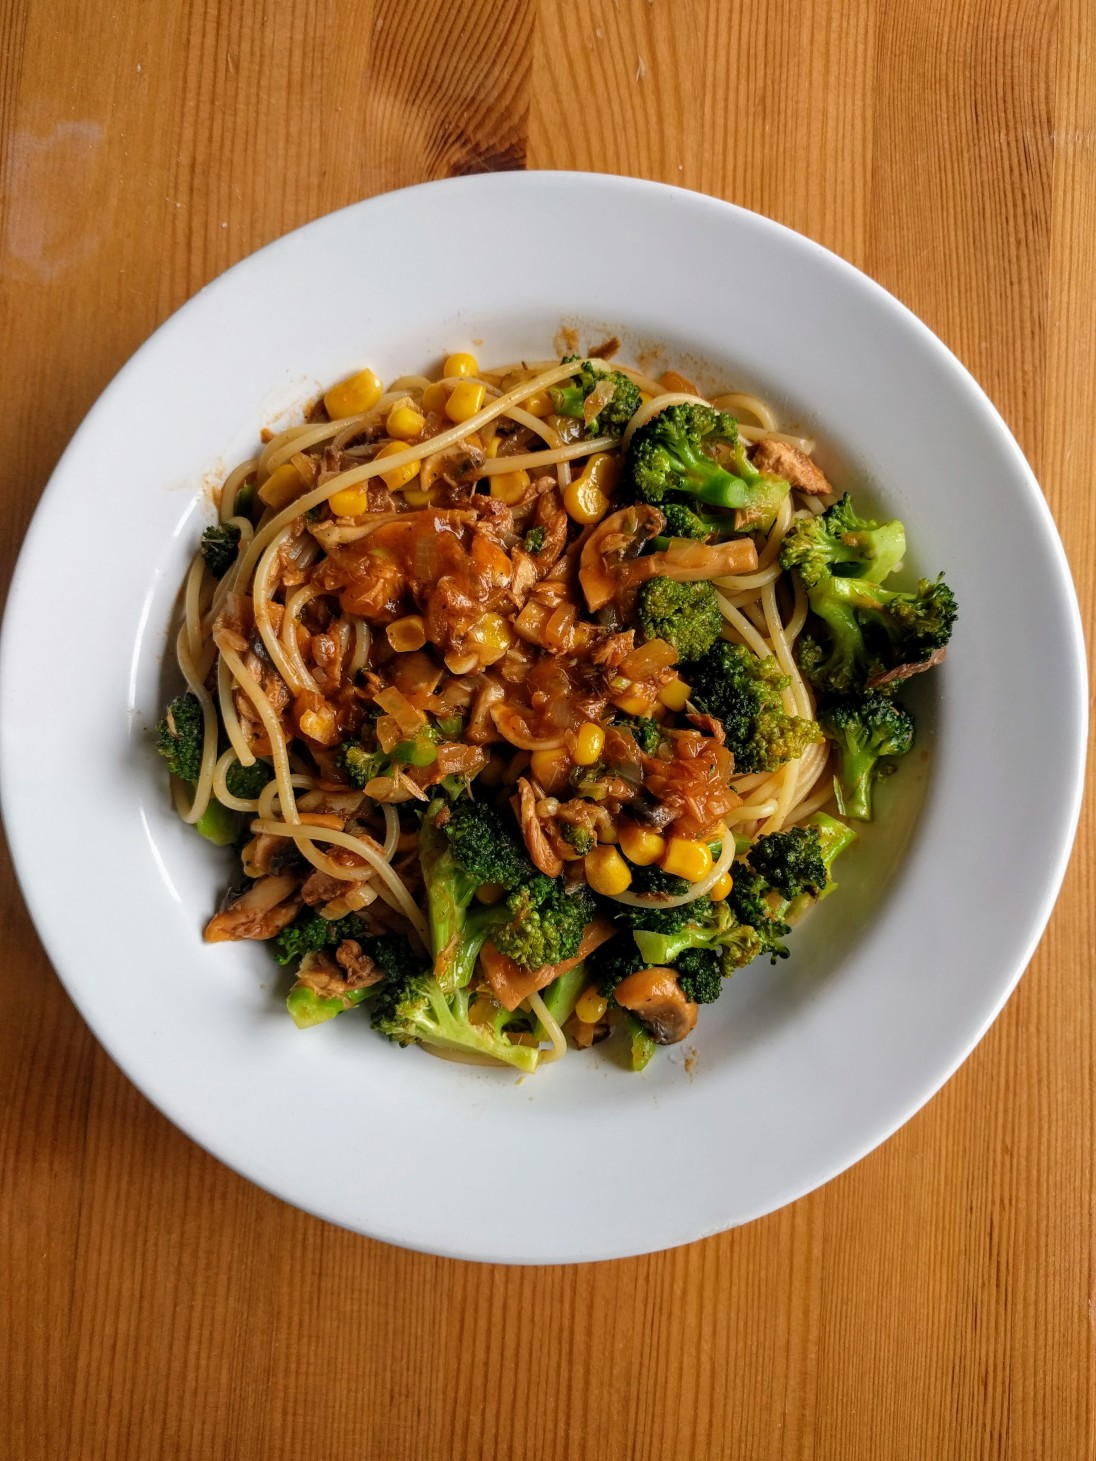 Spaghetti with Tuna and Vegetables